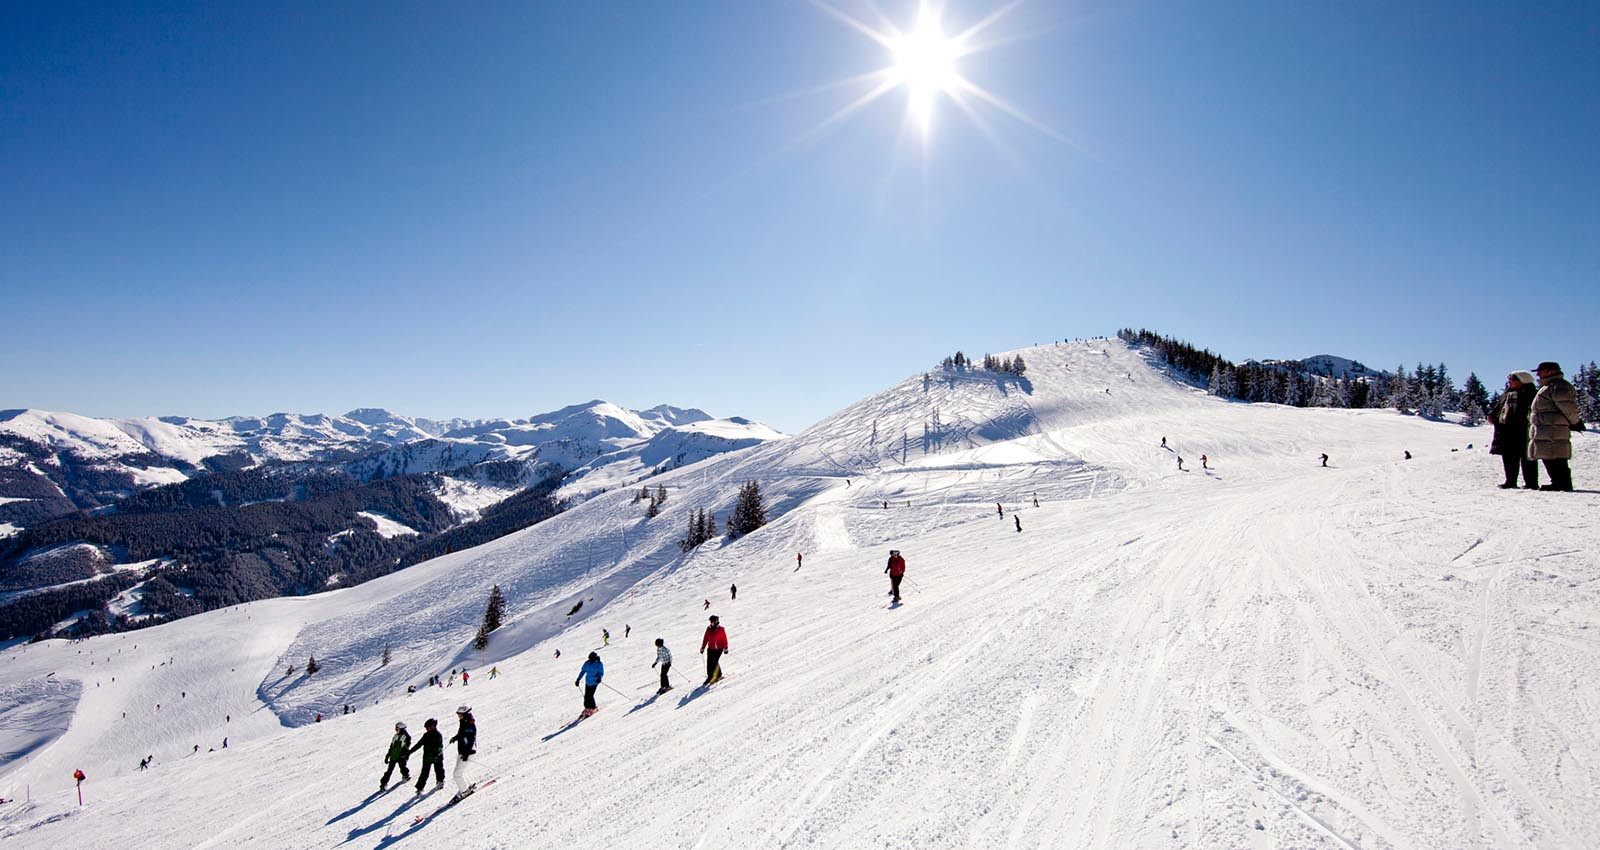 Take your school or group on ski trip to Austria